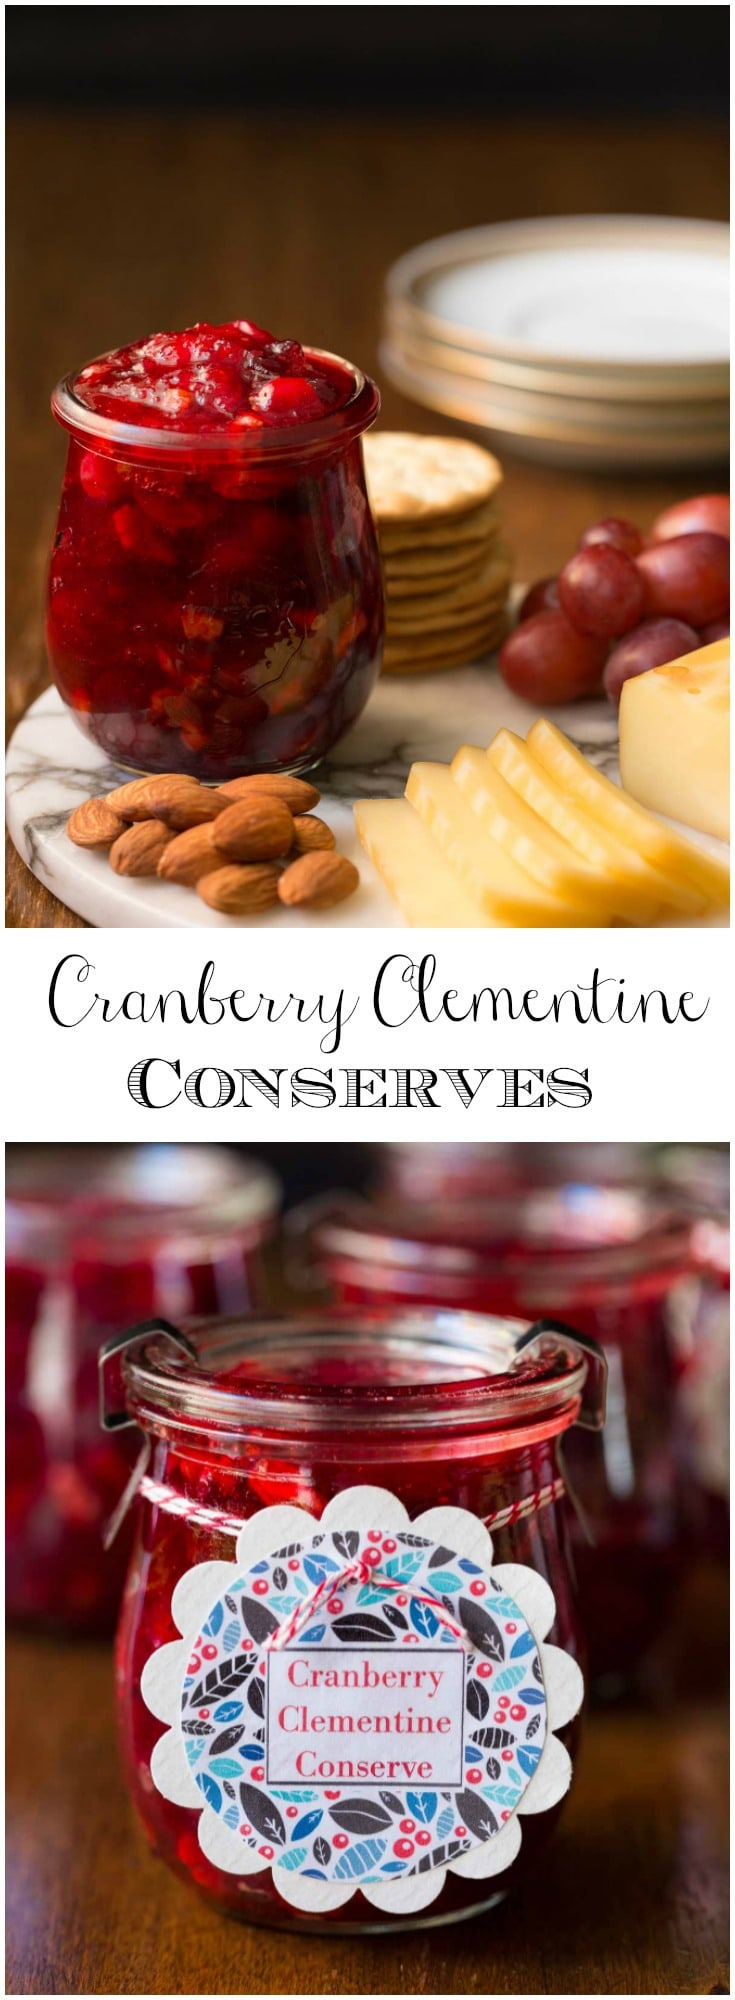 Keep a stash of these Cranberry Clementine Conserves handy for an easy and delicious appetizer. It's also fabulous for gift giving! #easyappetizer, #holidayappetizer